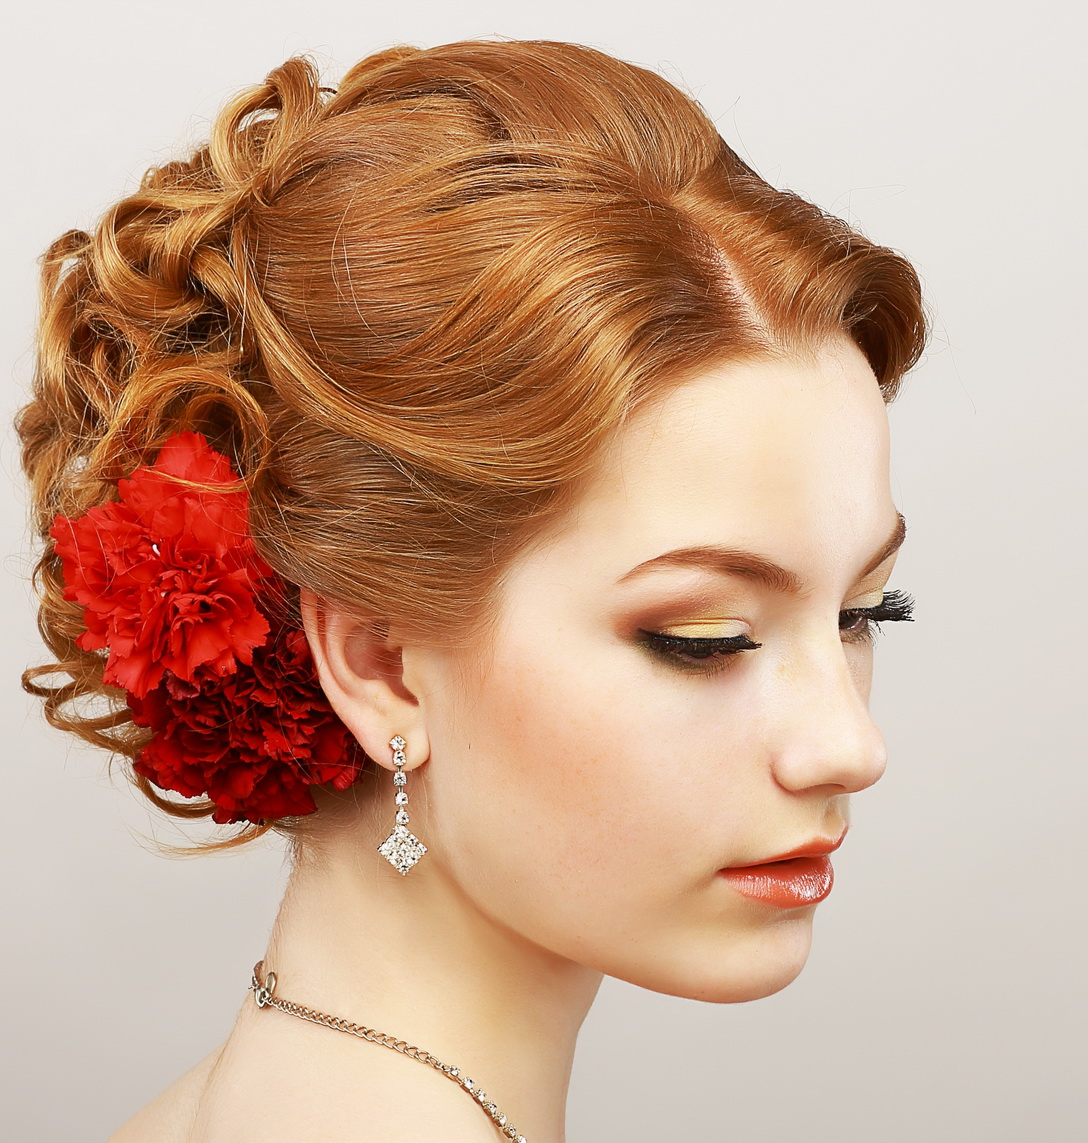 16 Easy Prom Hairstyles For Short And